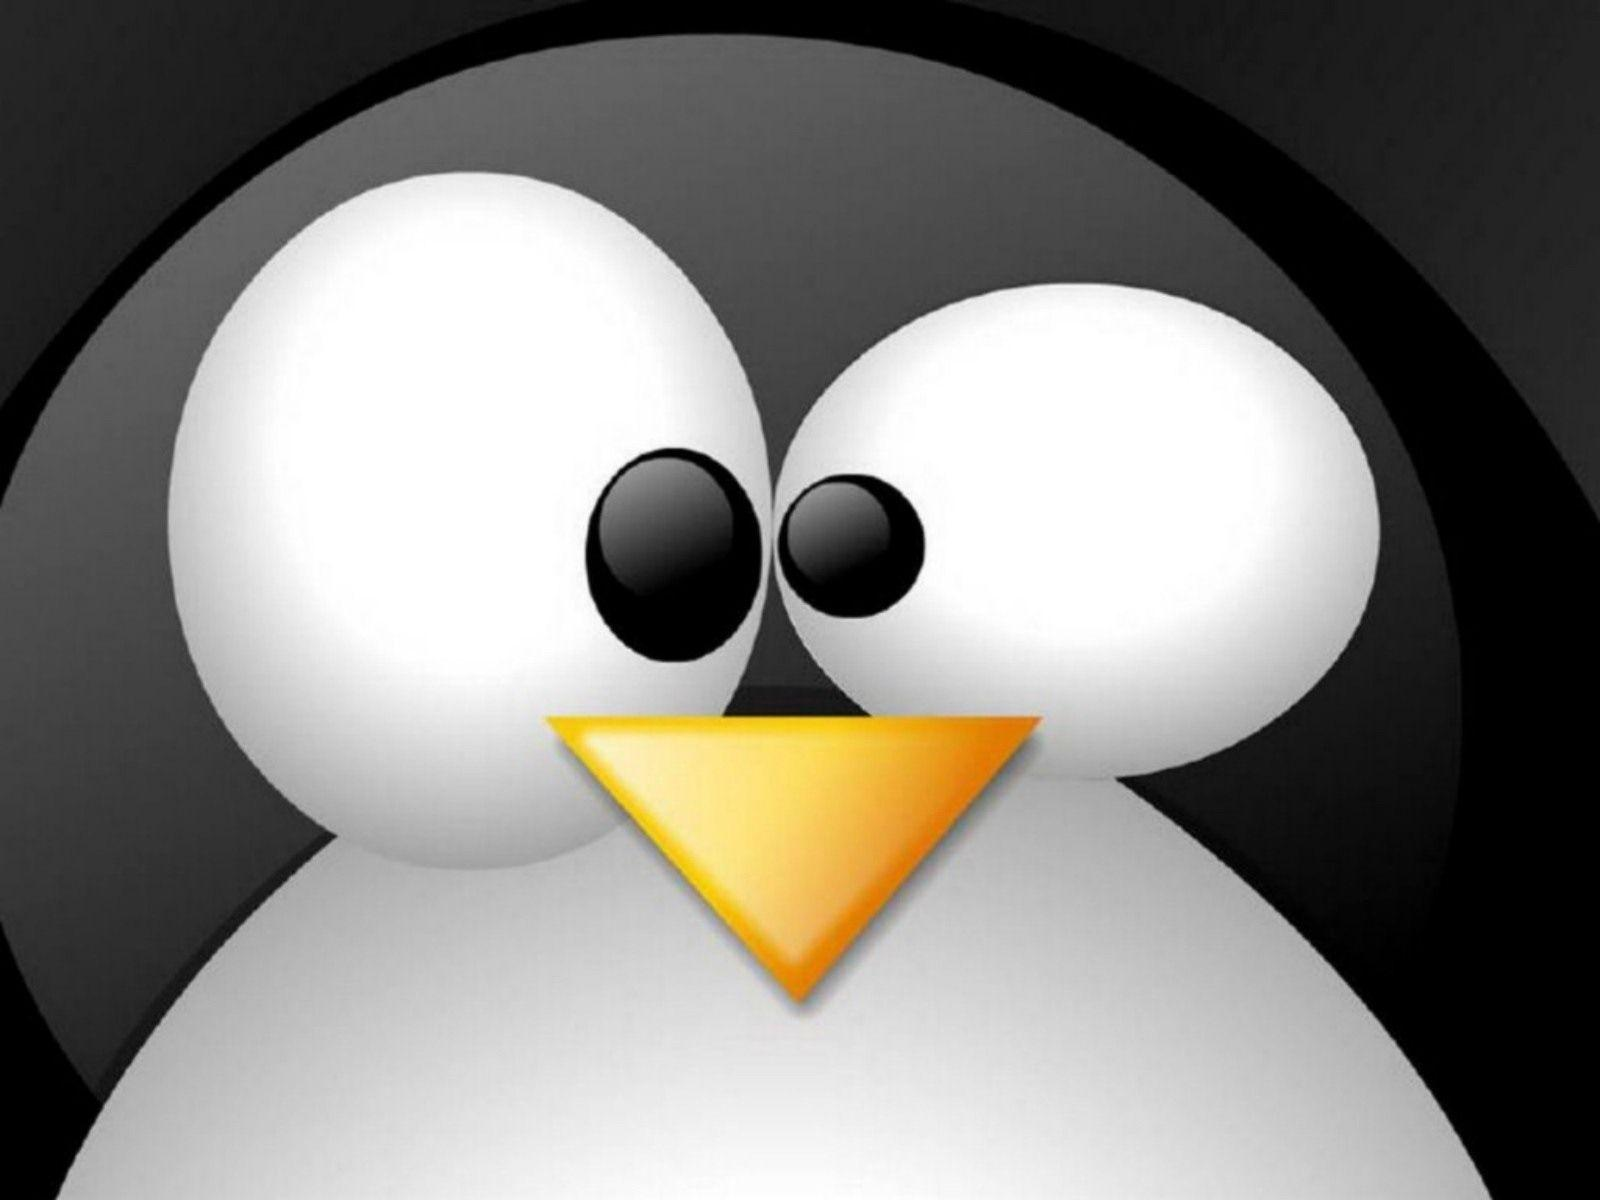 Tux Linux Wallpaper Desktop Backgrounds High Resolution Penguin ...